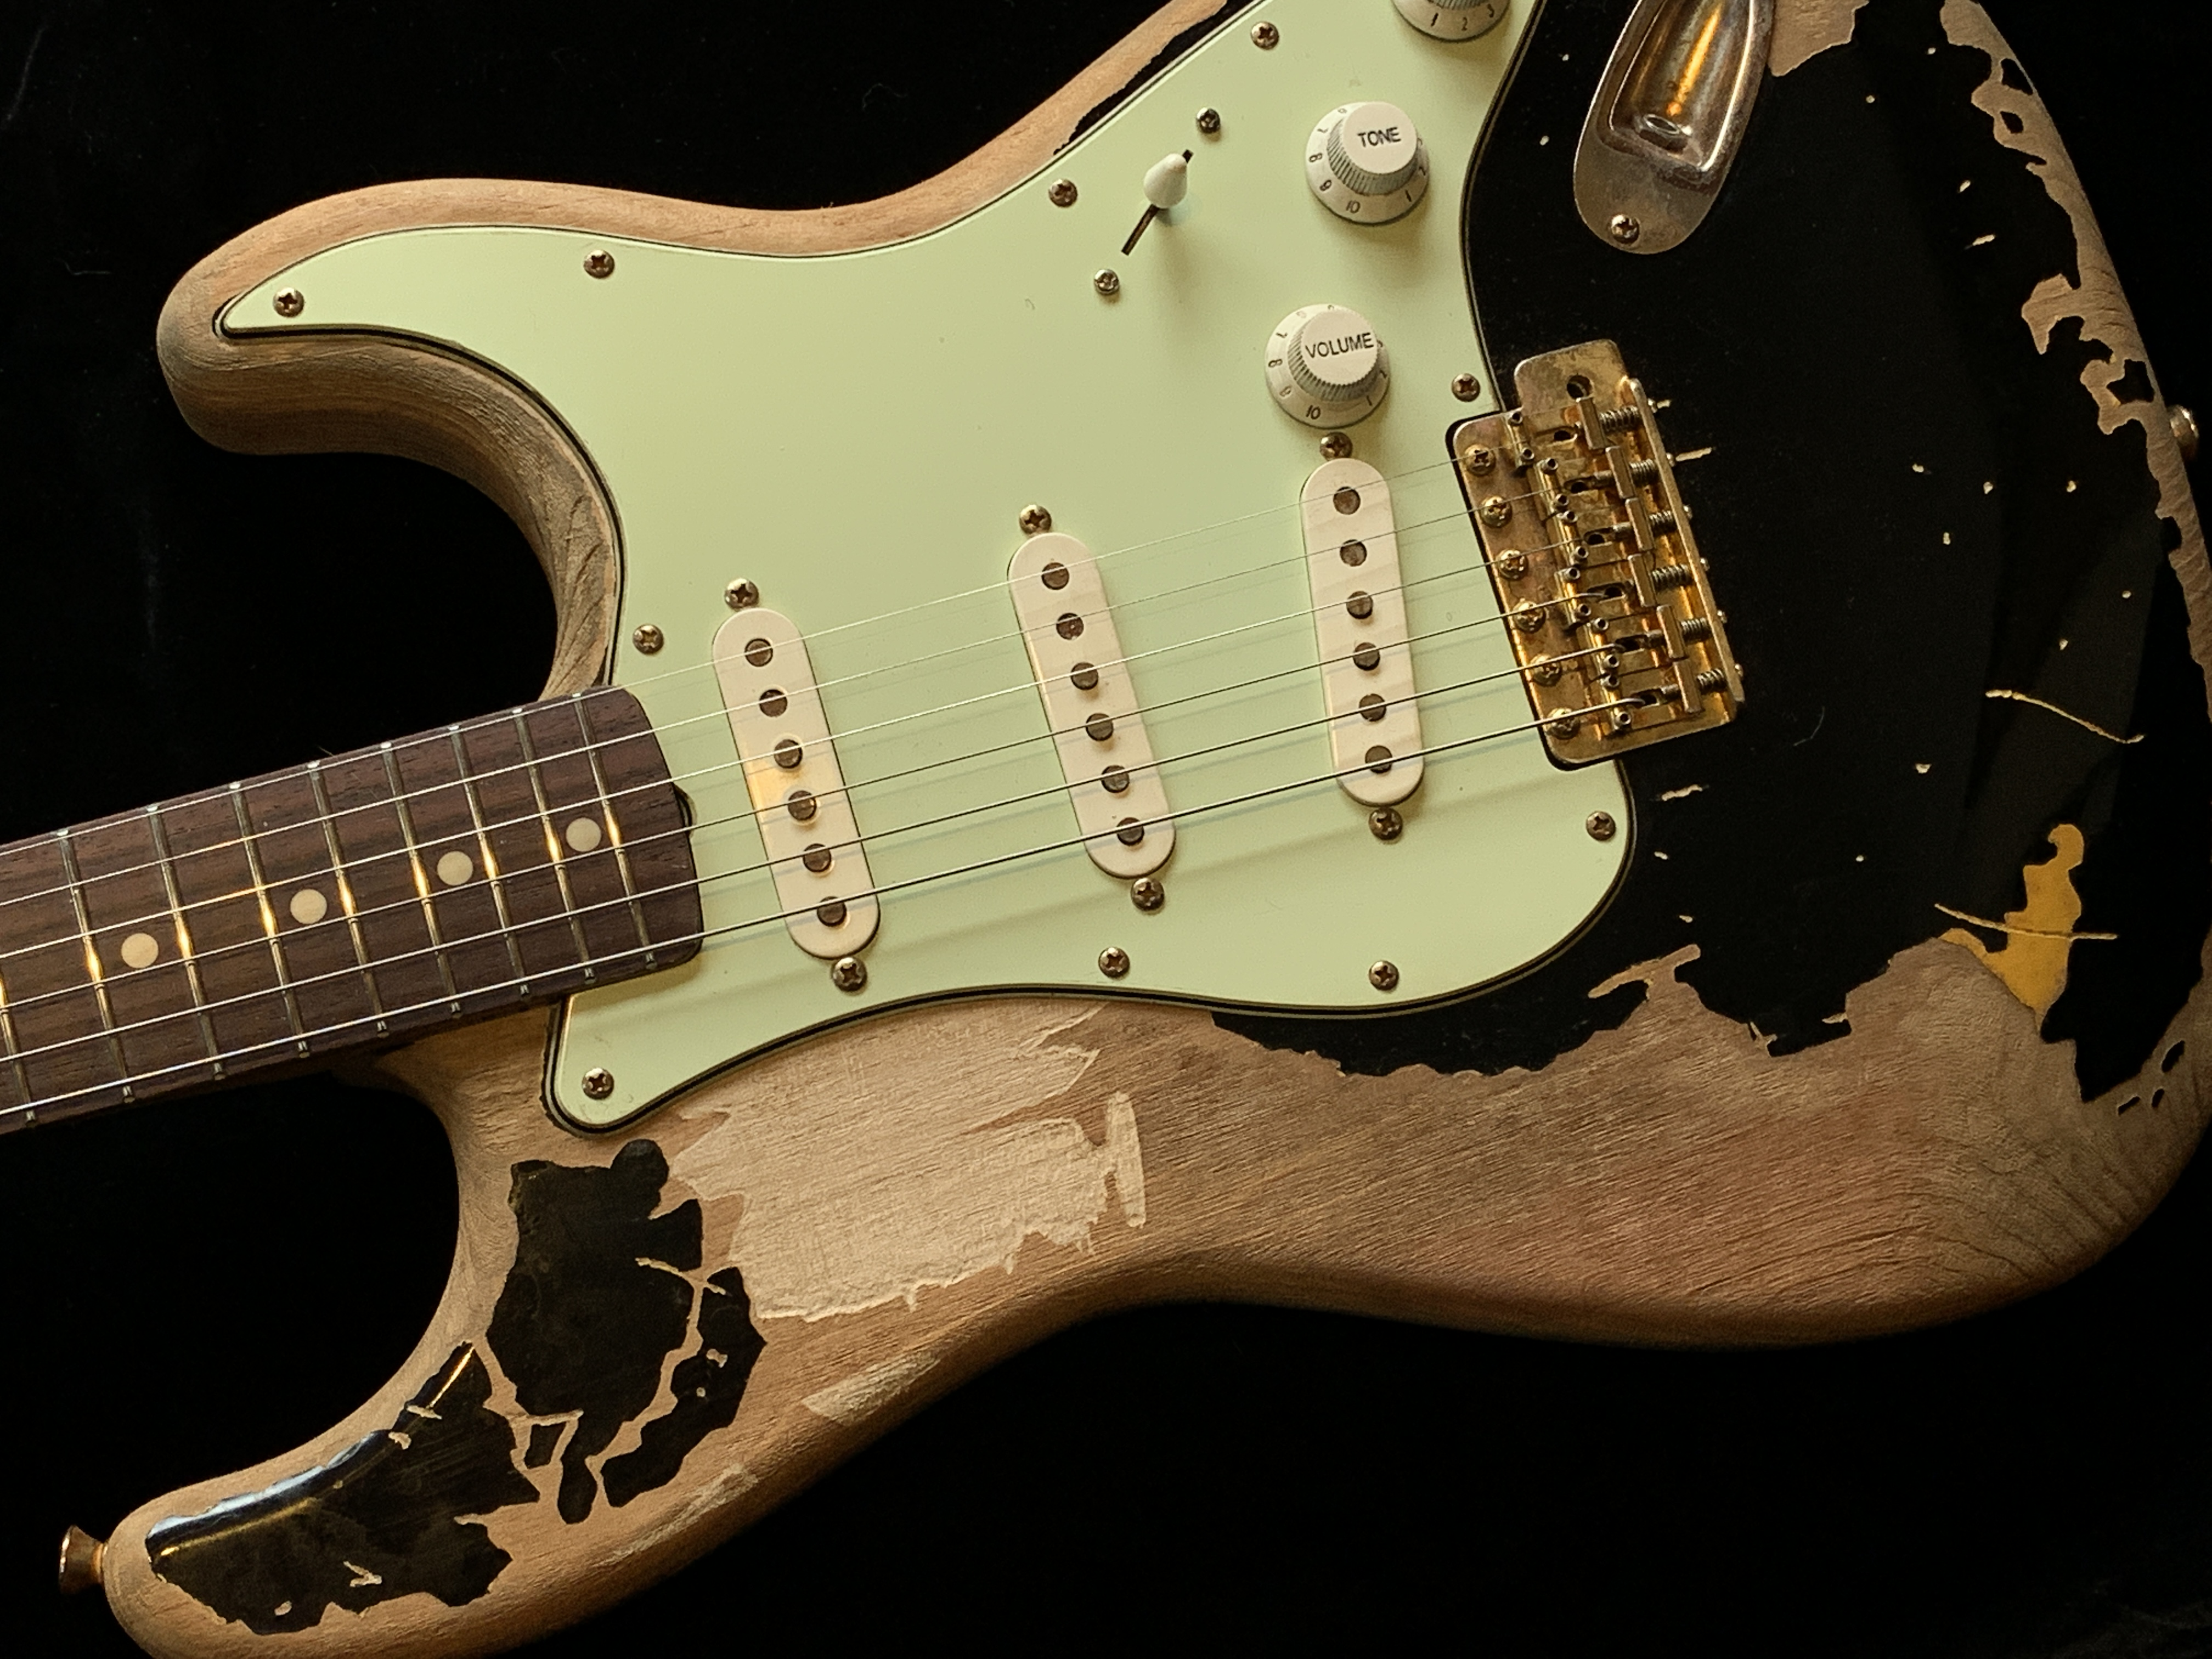 Remodeled John Mayer Black One Aged Parts A0408013